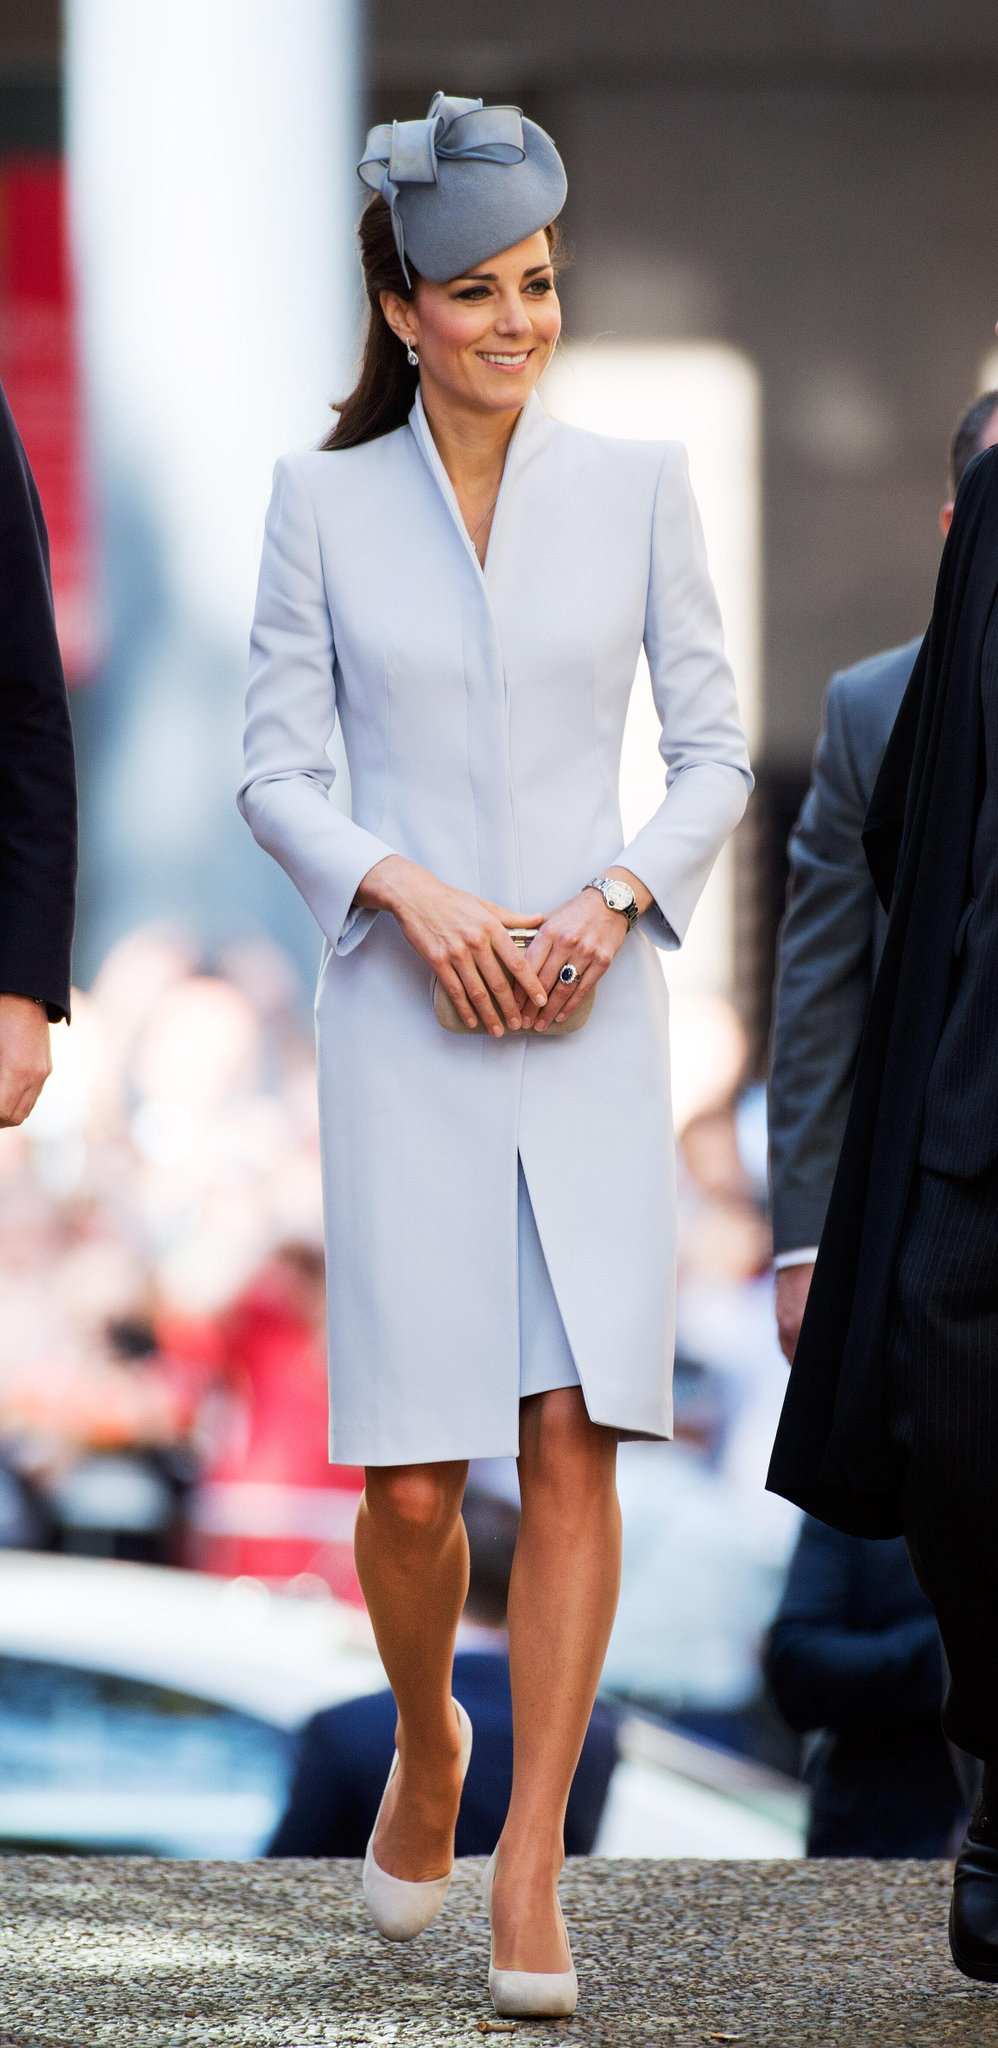 Kate Middleton looking flawless, as always: http://t.co/QcqUZlf2mX http://t.co/9uiek2TdCI